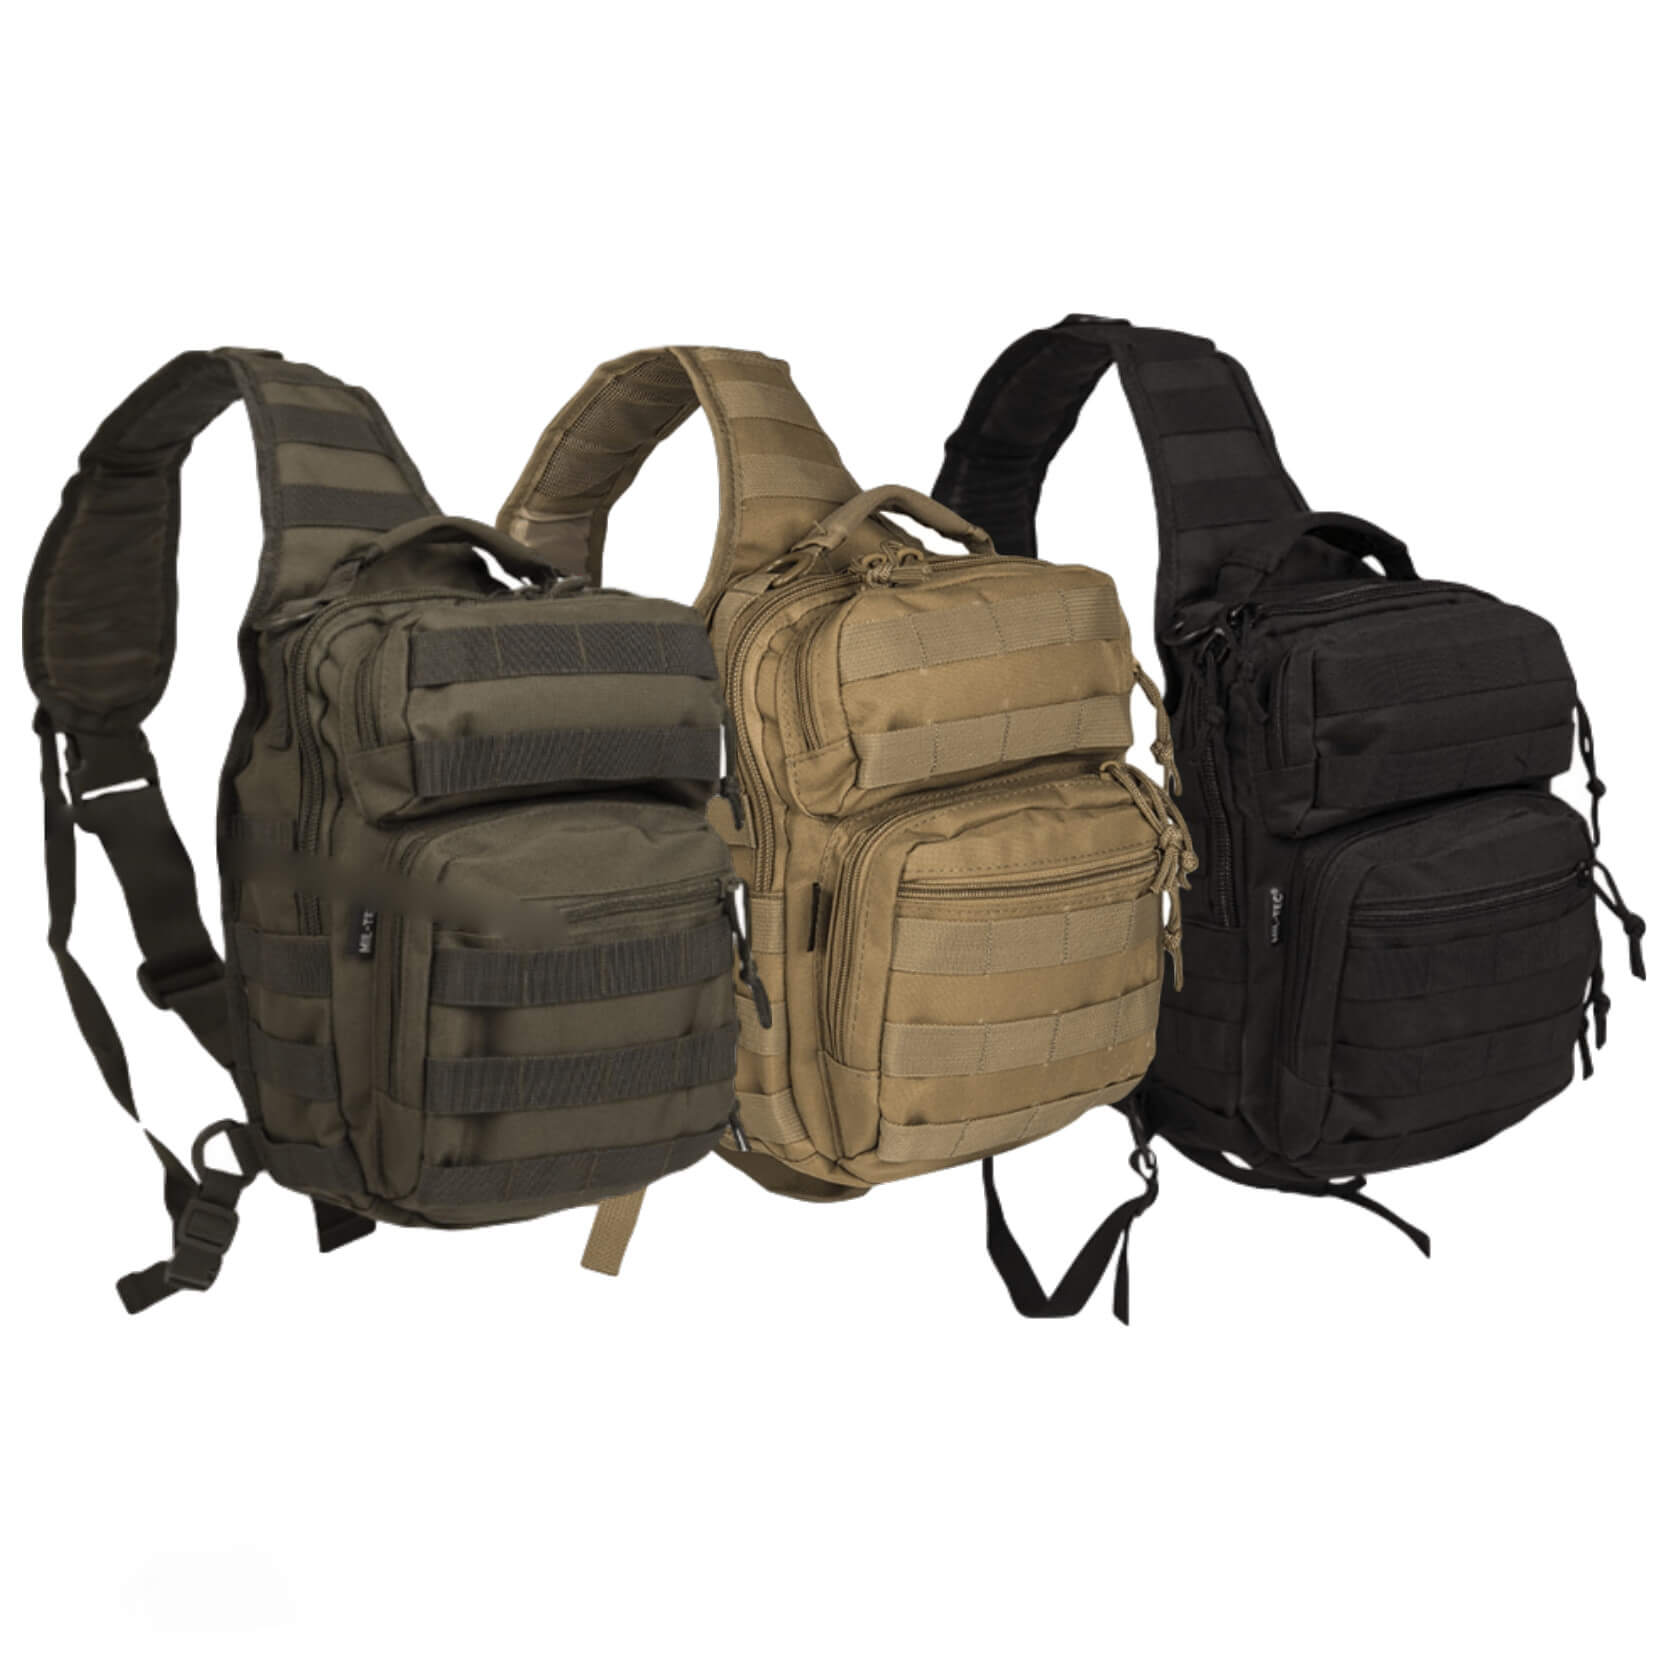 MIL-TEC ONE STRAP ASSAULT PACK SM